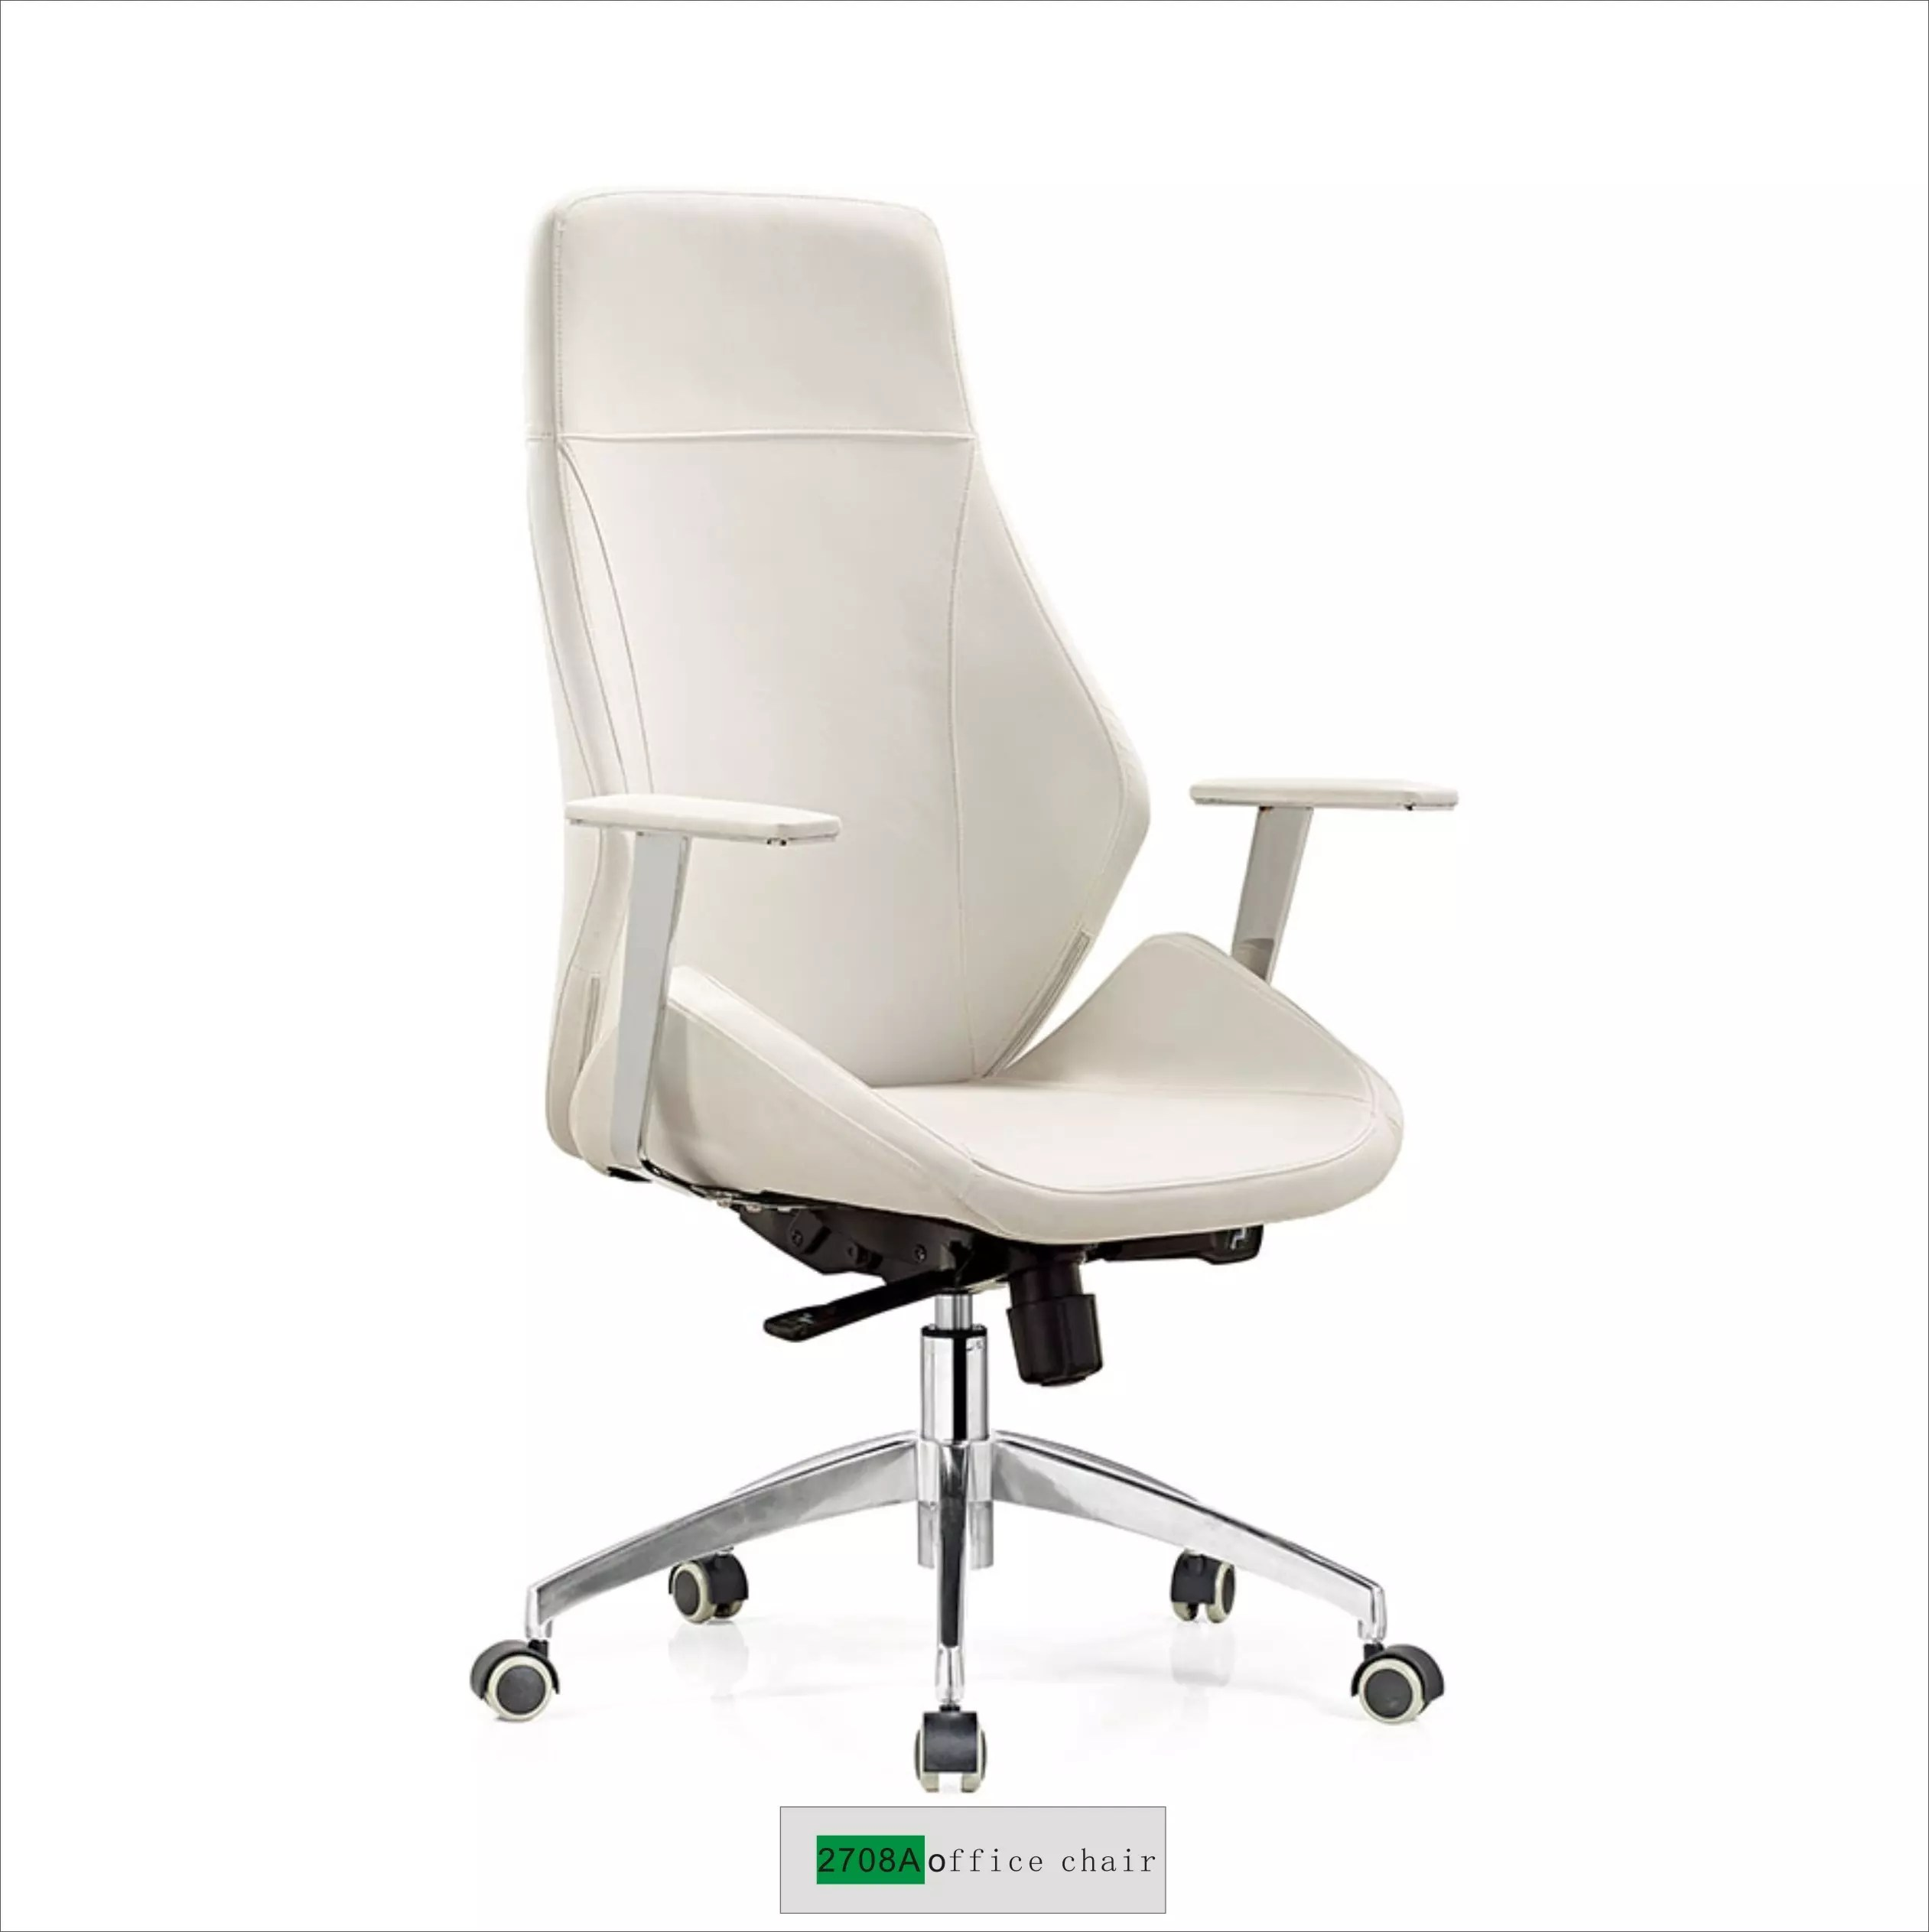 Comfy Office Chairs Comfy Office Chair 2708a Buy Big And Tall Office Chair Office